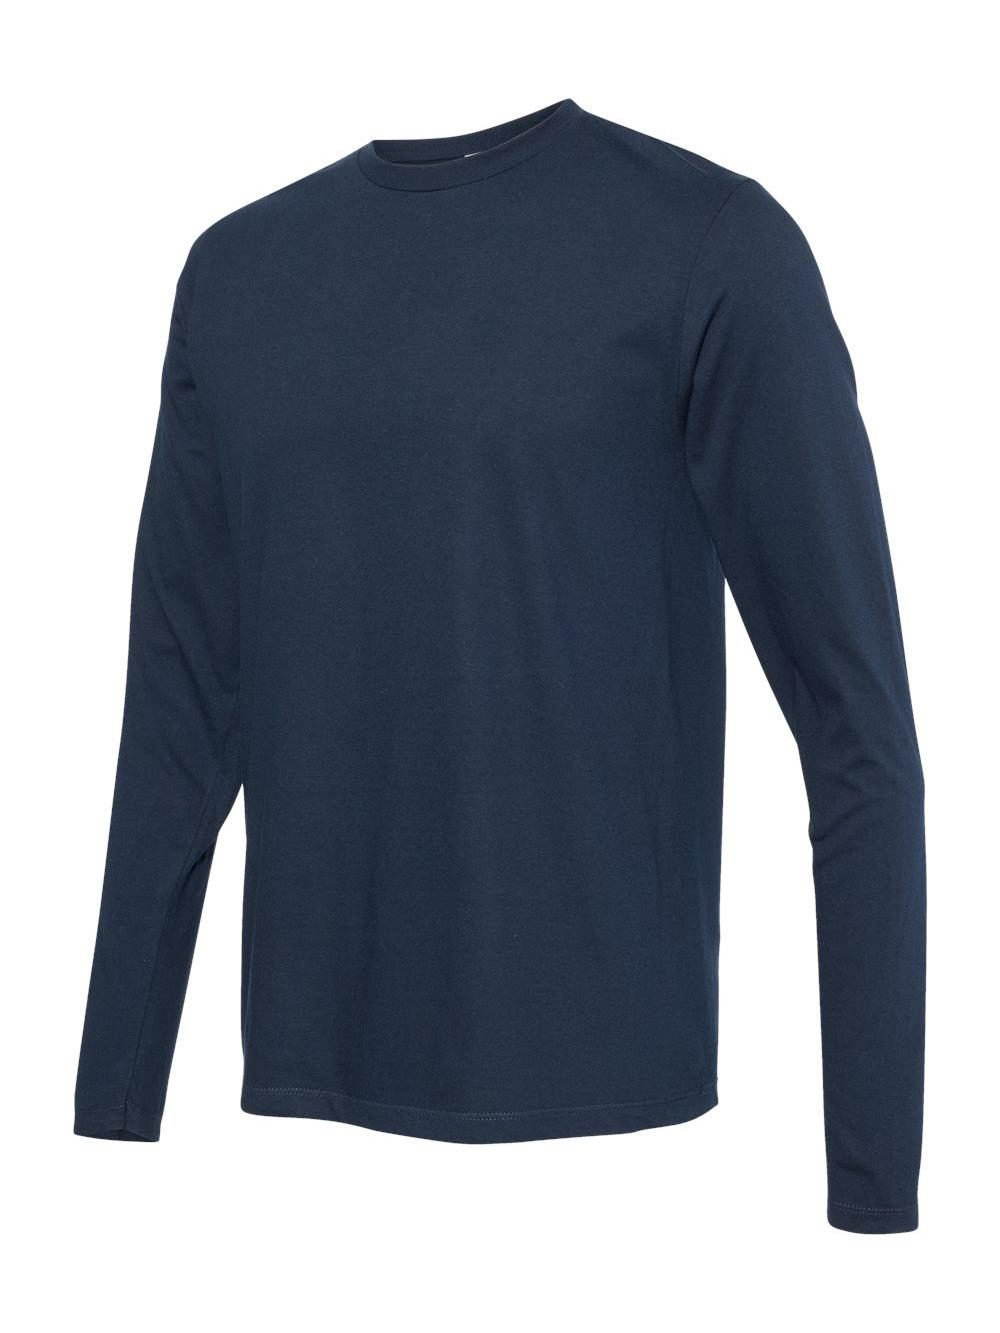 ALSTYLE-Ultimate-Long-Sleeve-T-Shirt-5304 thumbnail 12